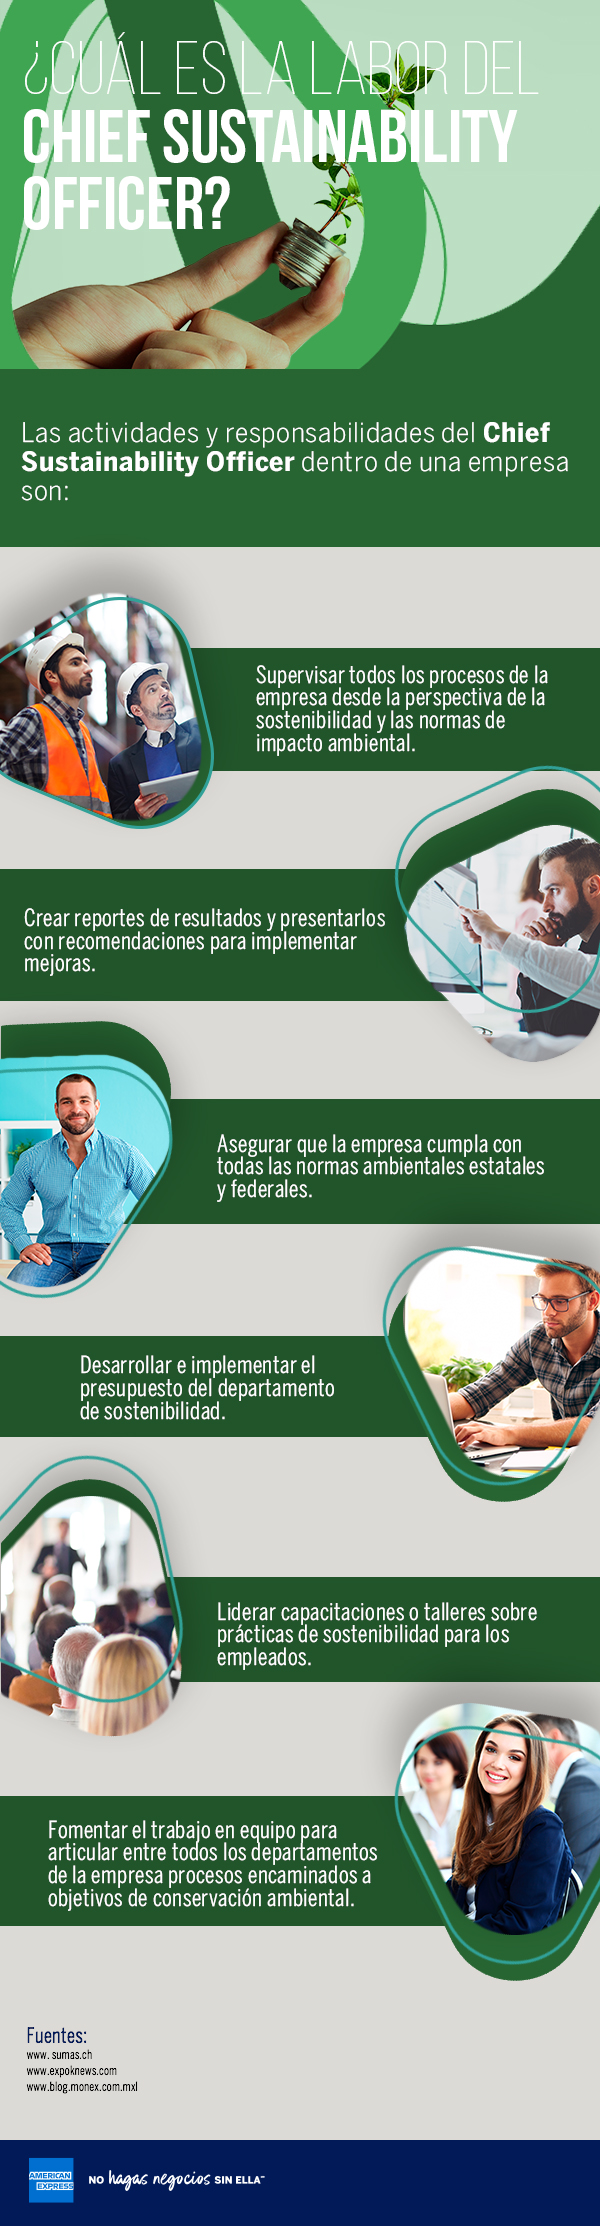 ¿Cuál es la labor del Chief Sustainability Officer?